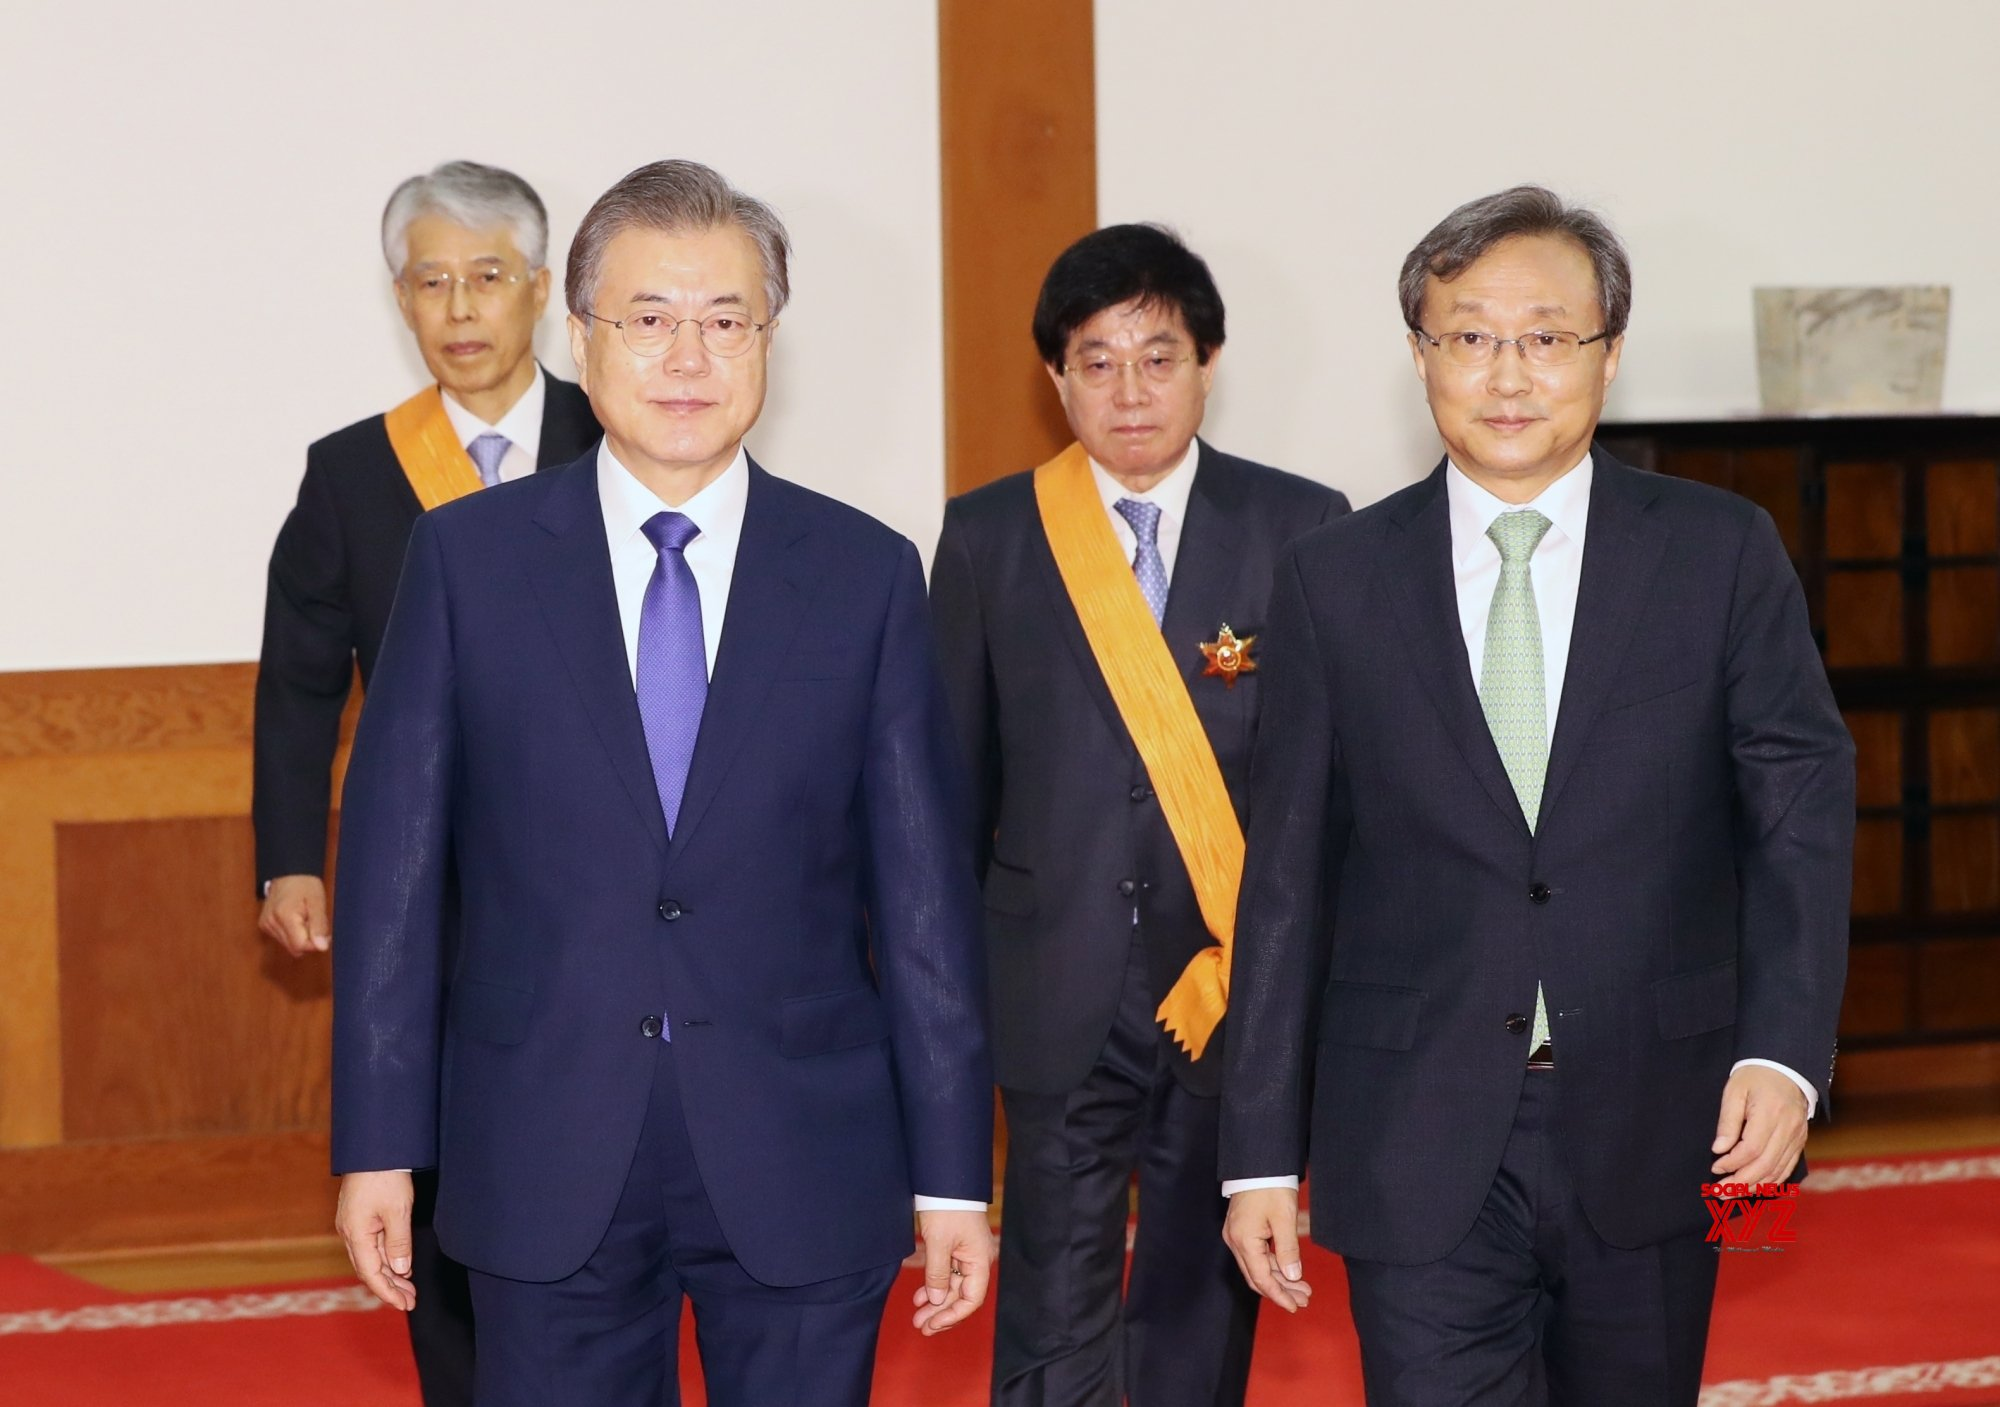 Seoul: Moon Jae - in confers state medals on retired justices #Gallery